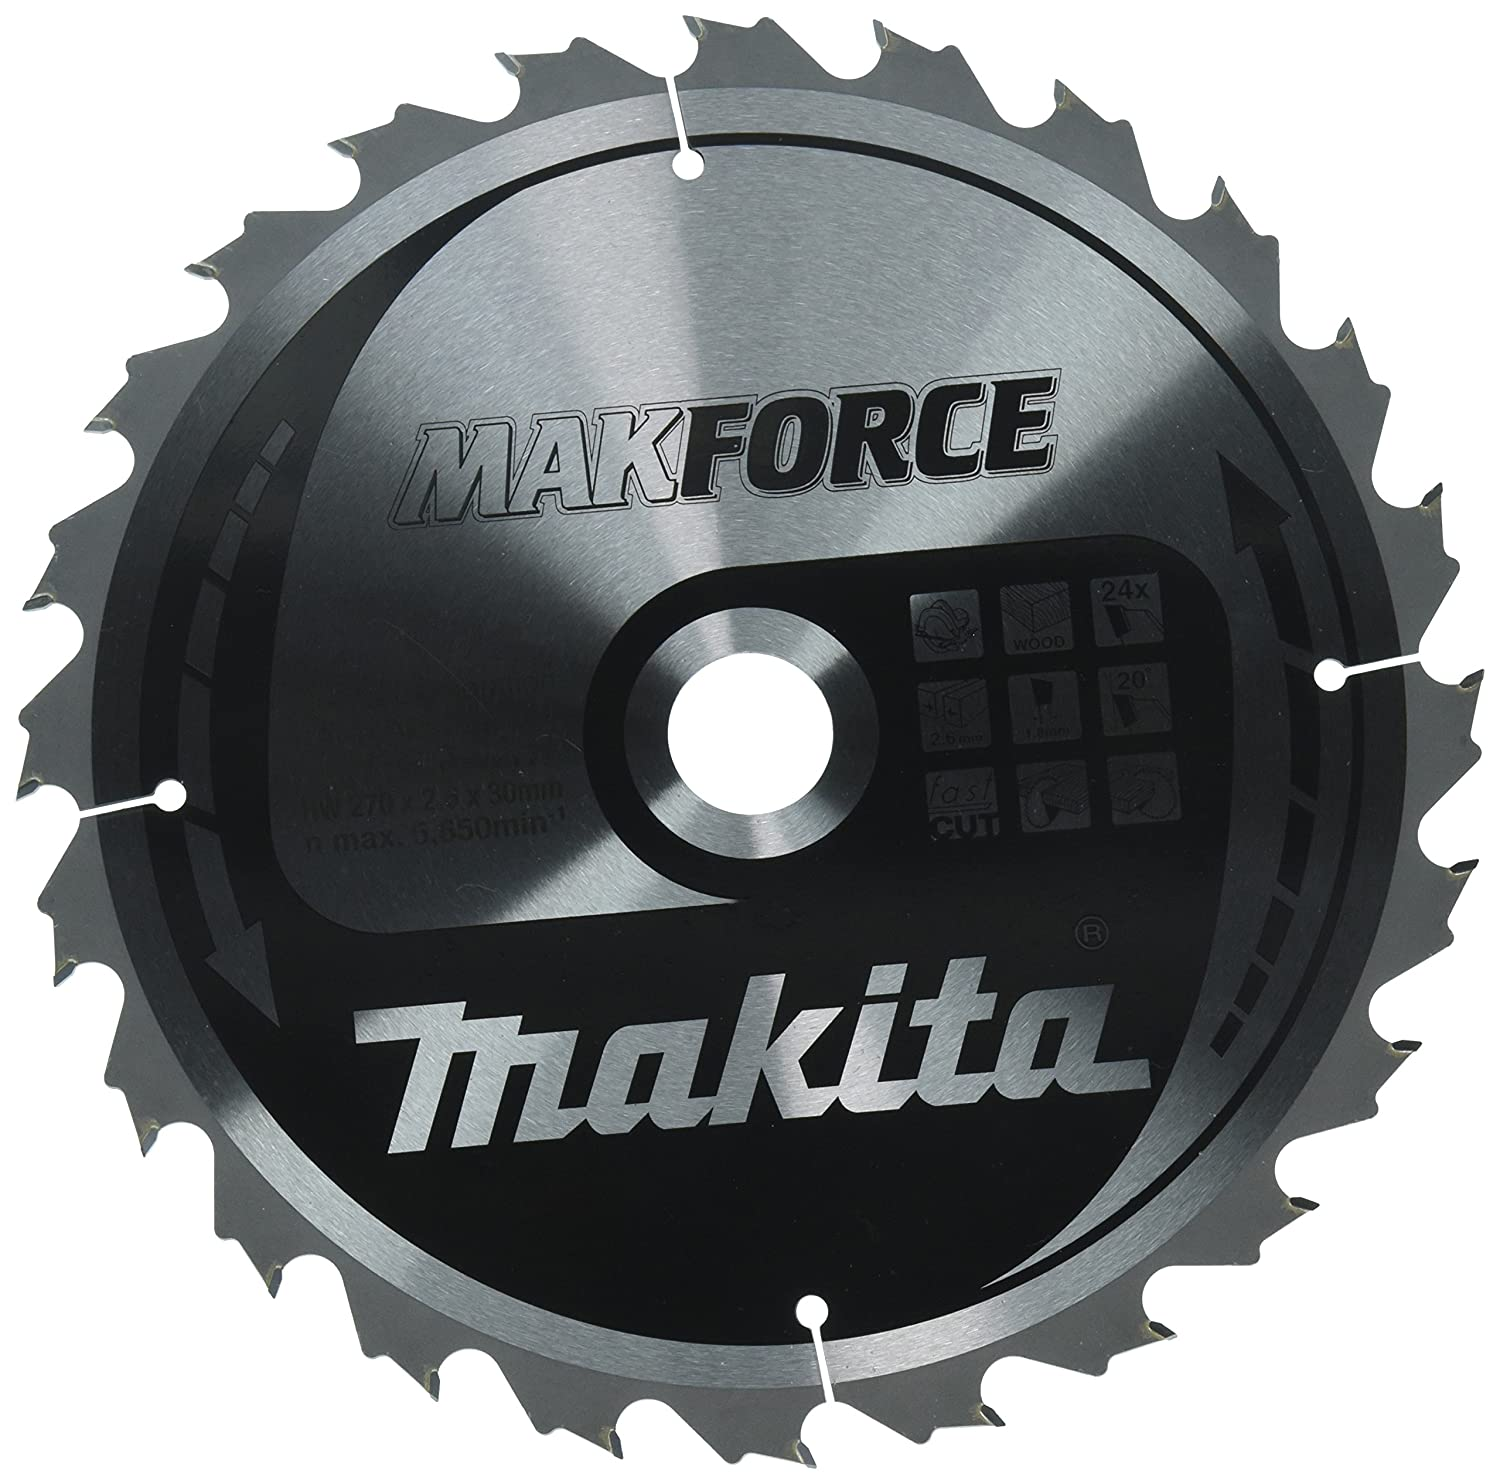 Makita makforce saege Lame, 270  x 30  mm, 24  dents, 32172 270 x 30 mm 24 dents B-32172